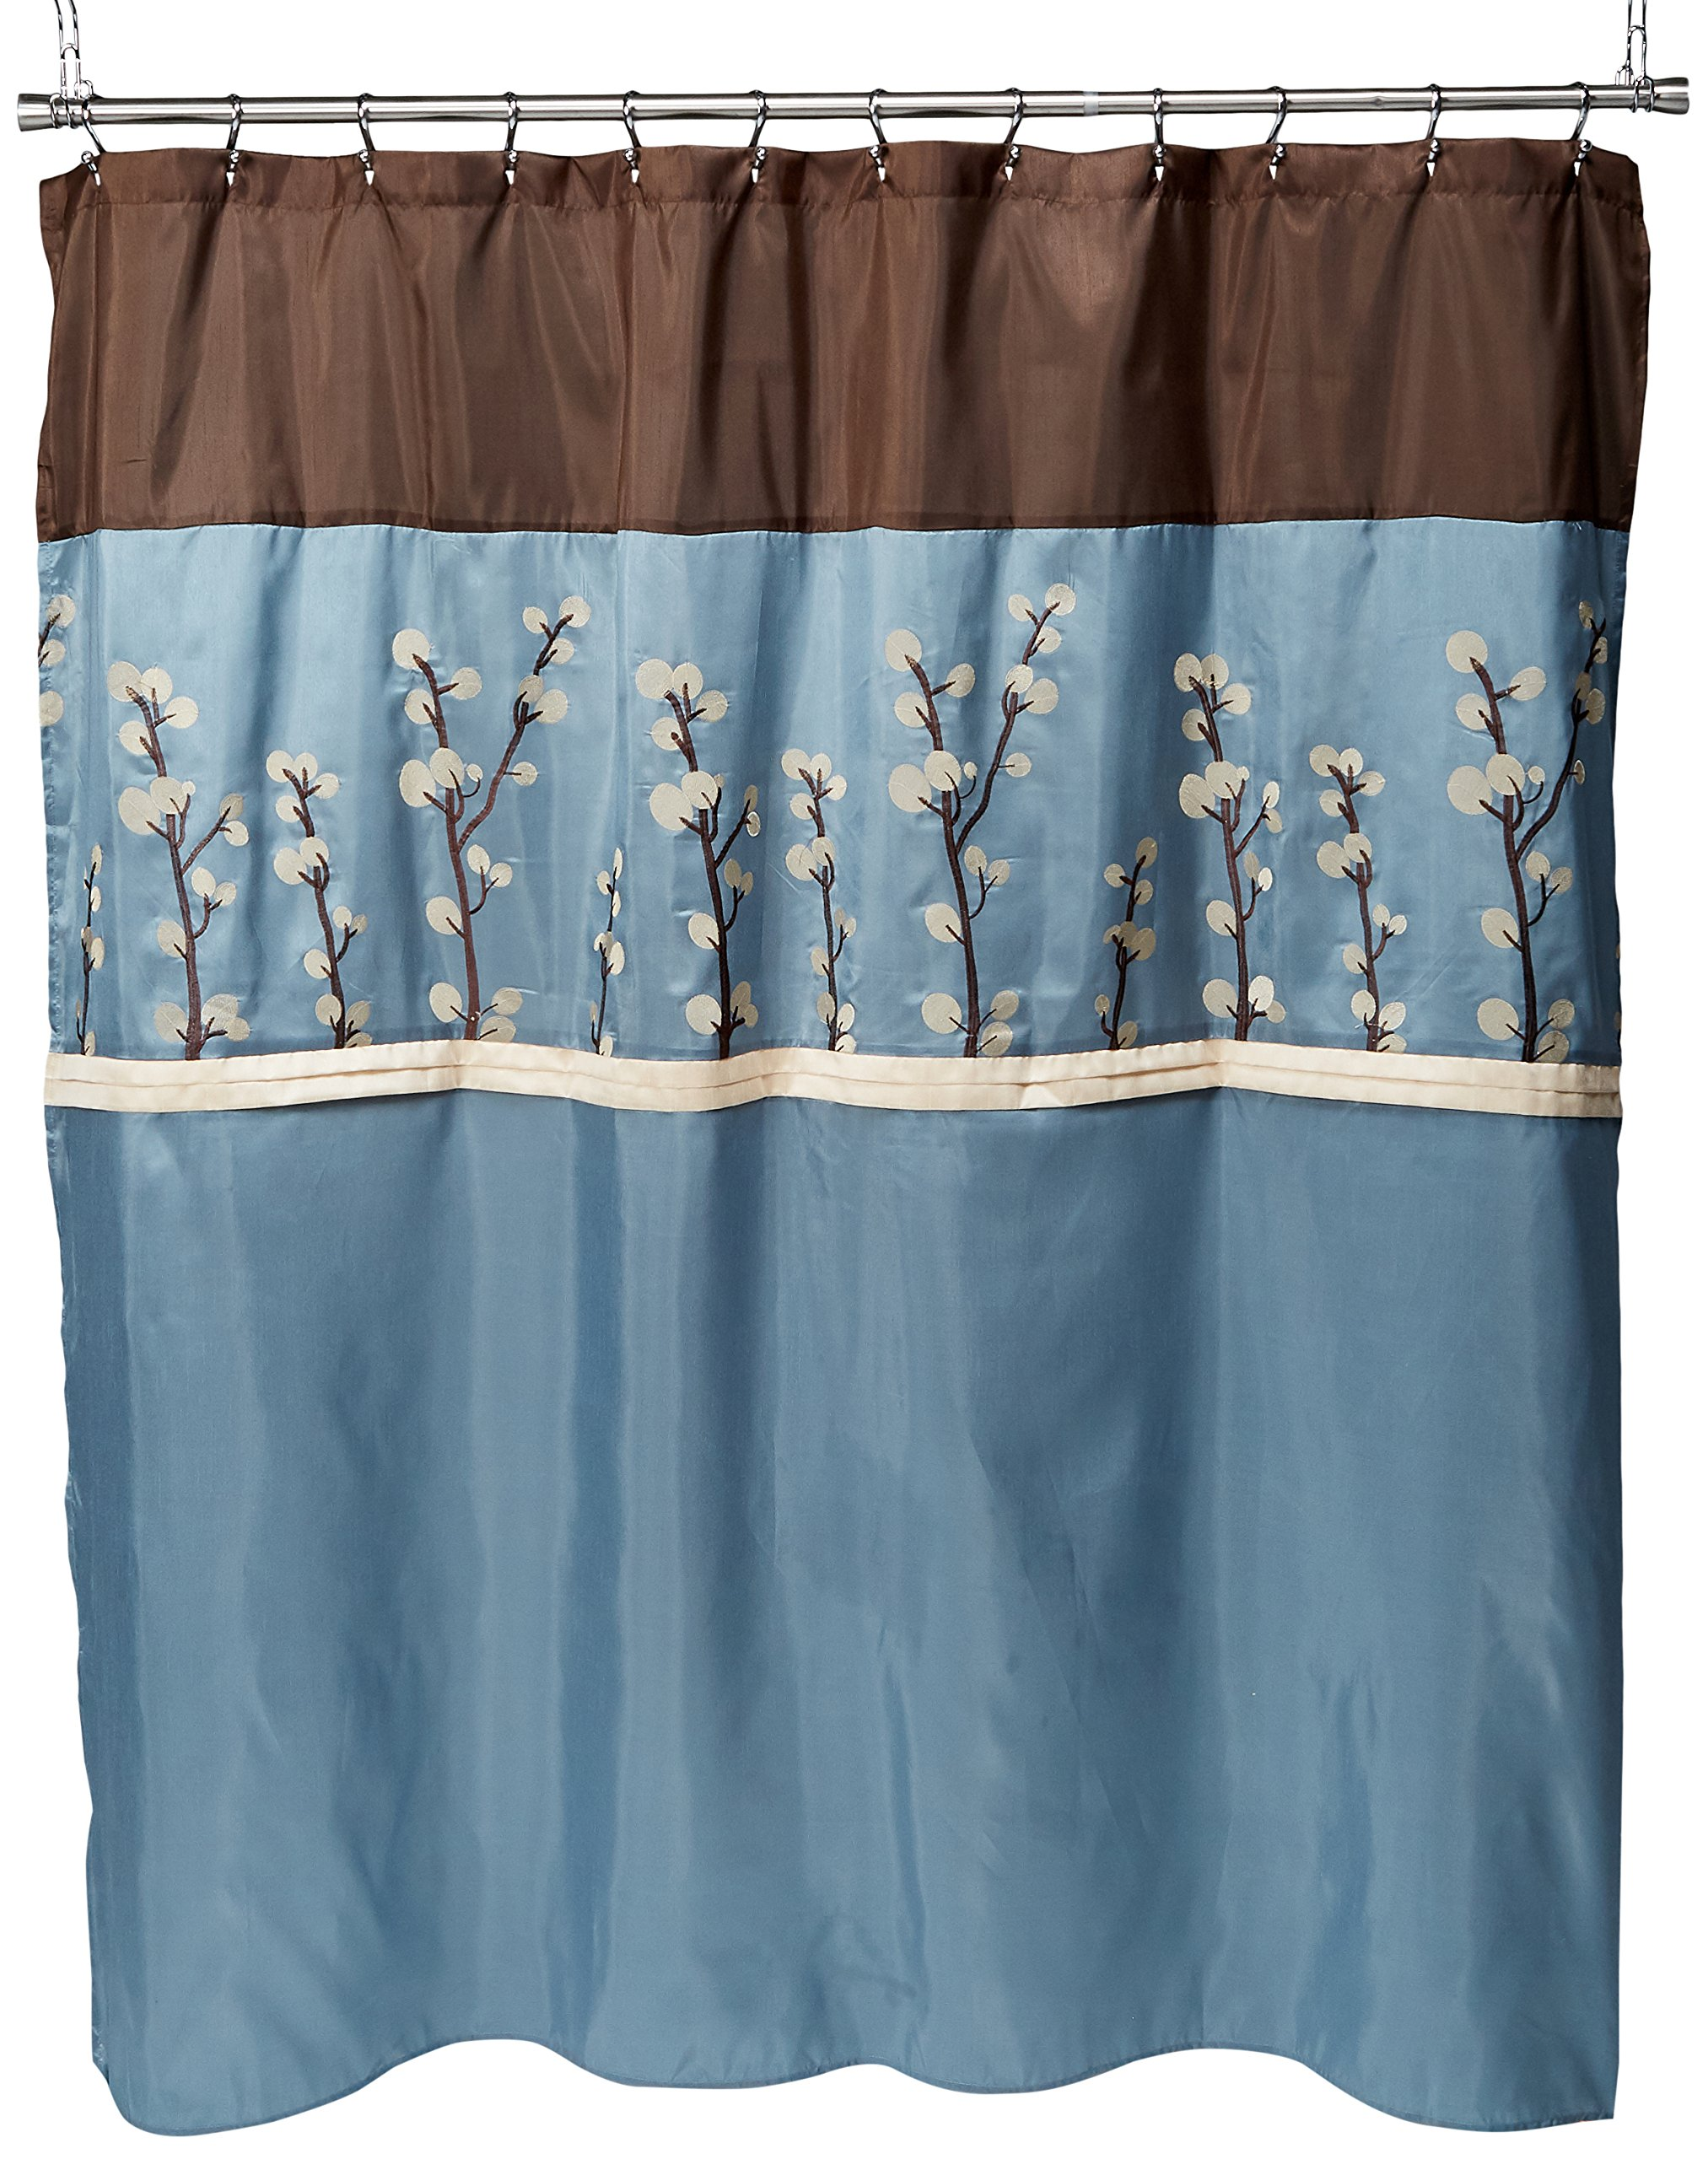 blue and brown curtains. Black Bedroom Furniture Sets. Home Design Ideas